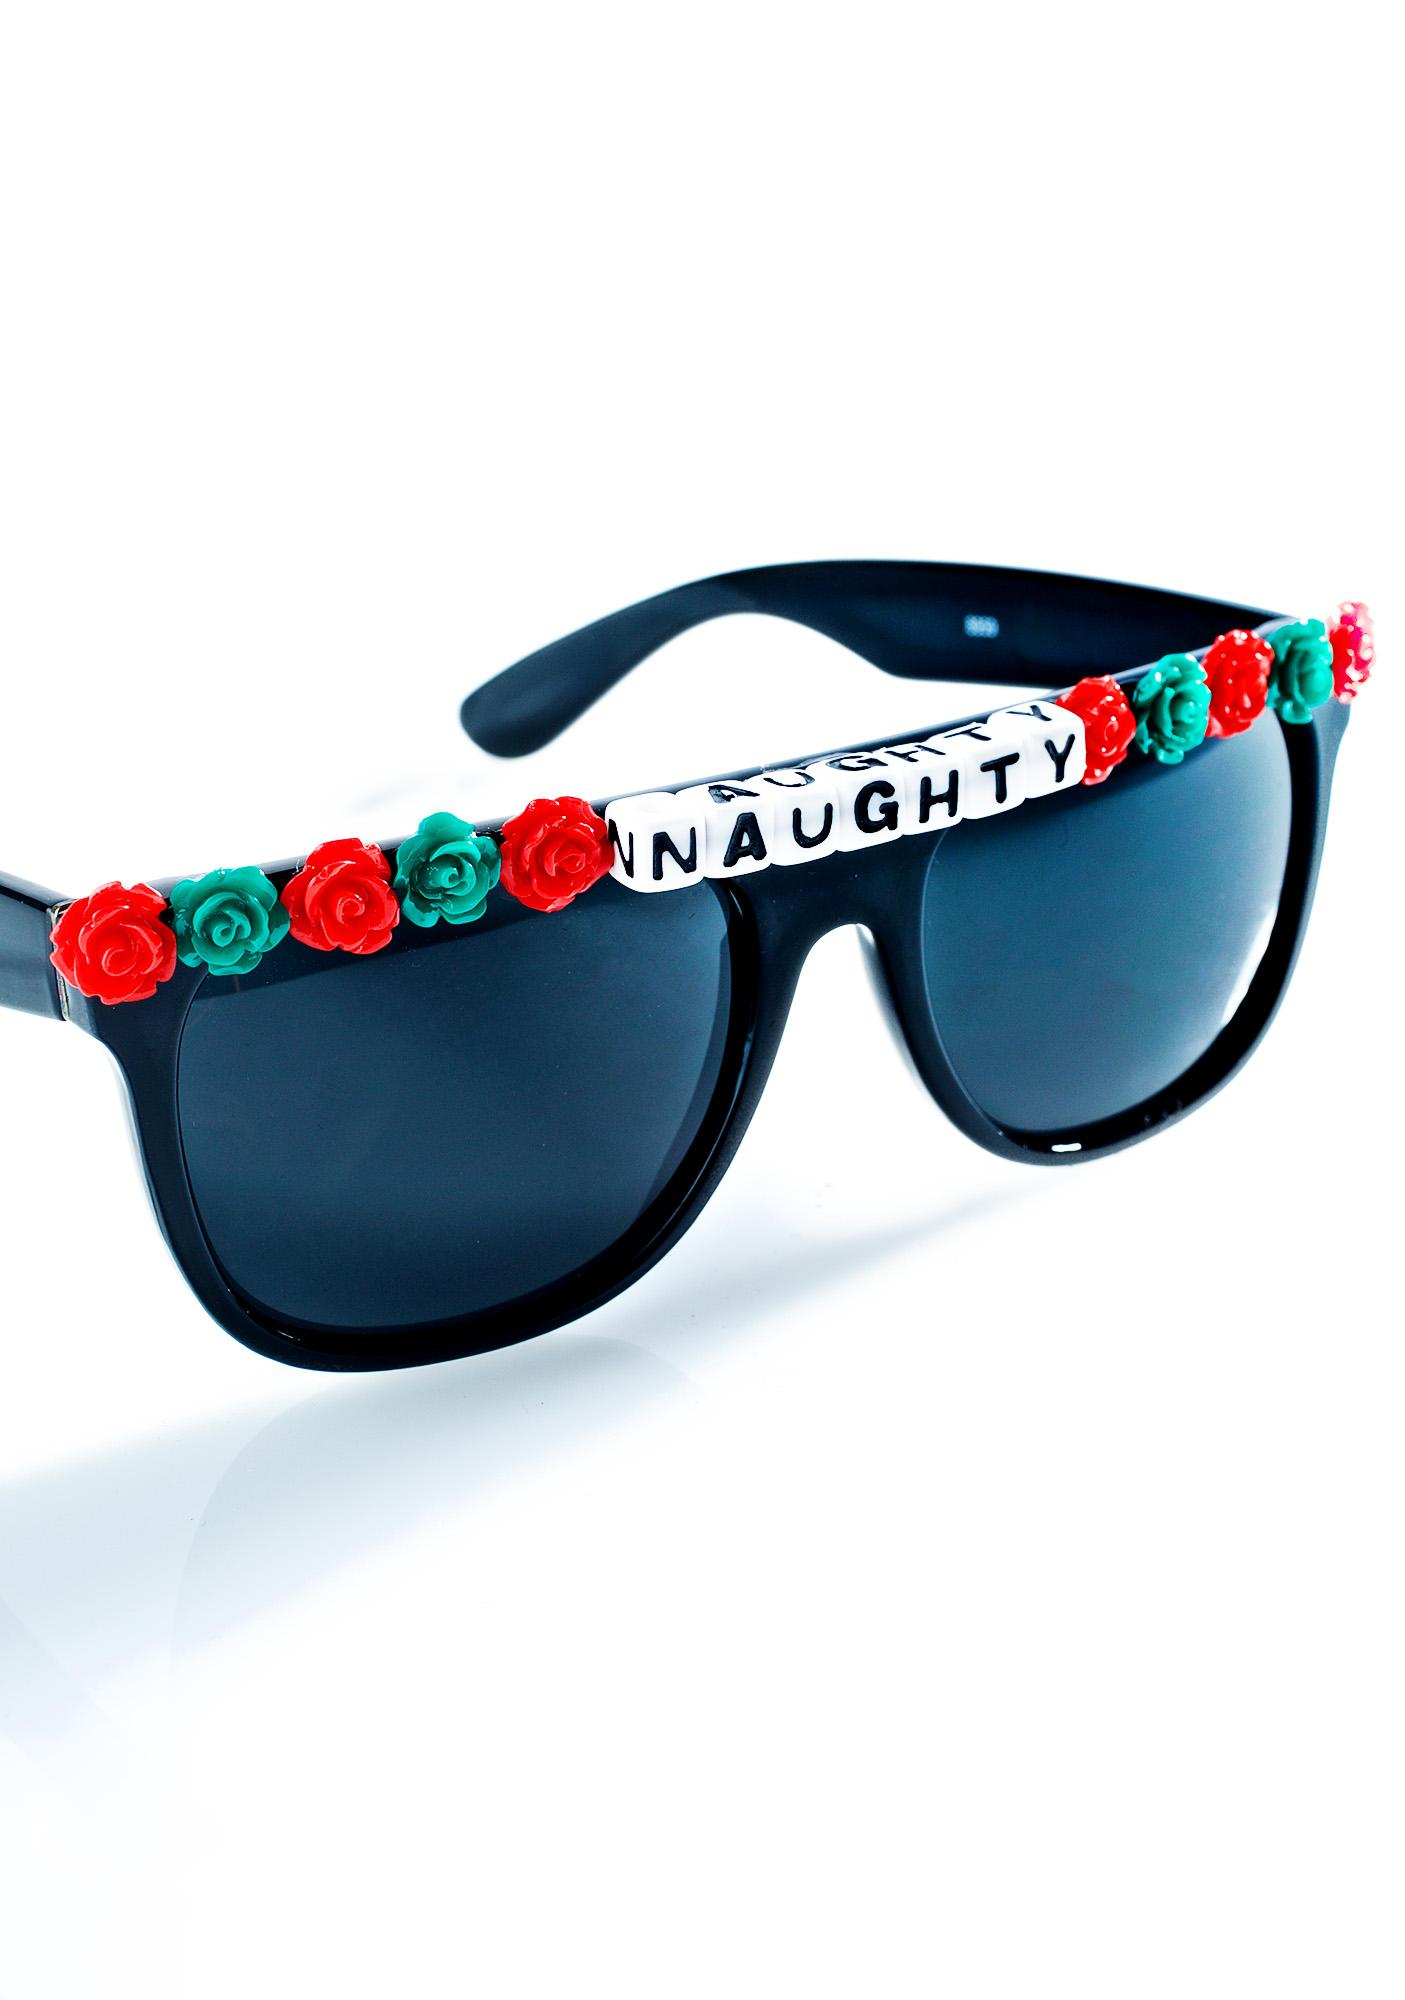 Rad and Refined Naughty Sunglasses